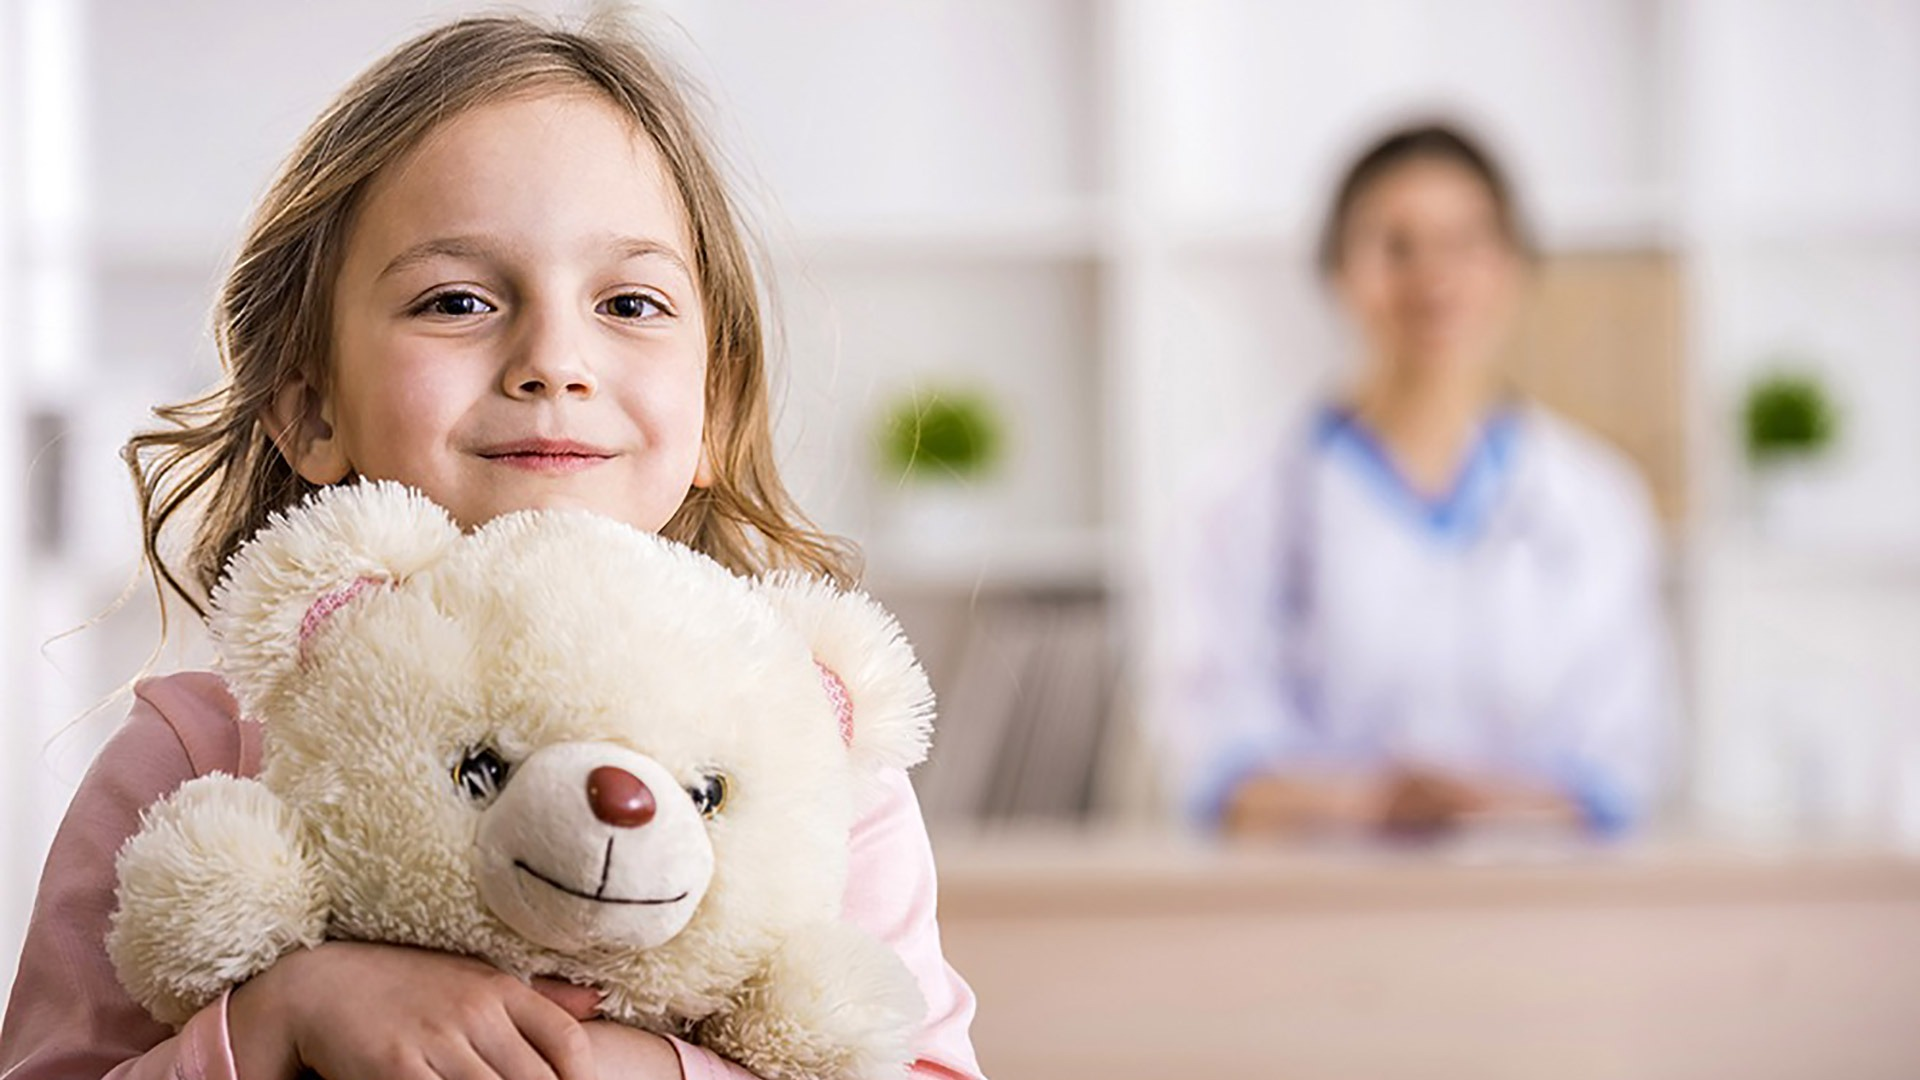 Smiling girl with teddy bear